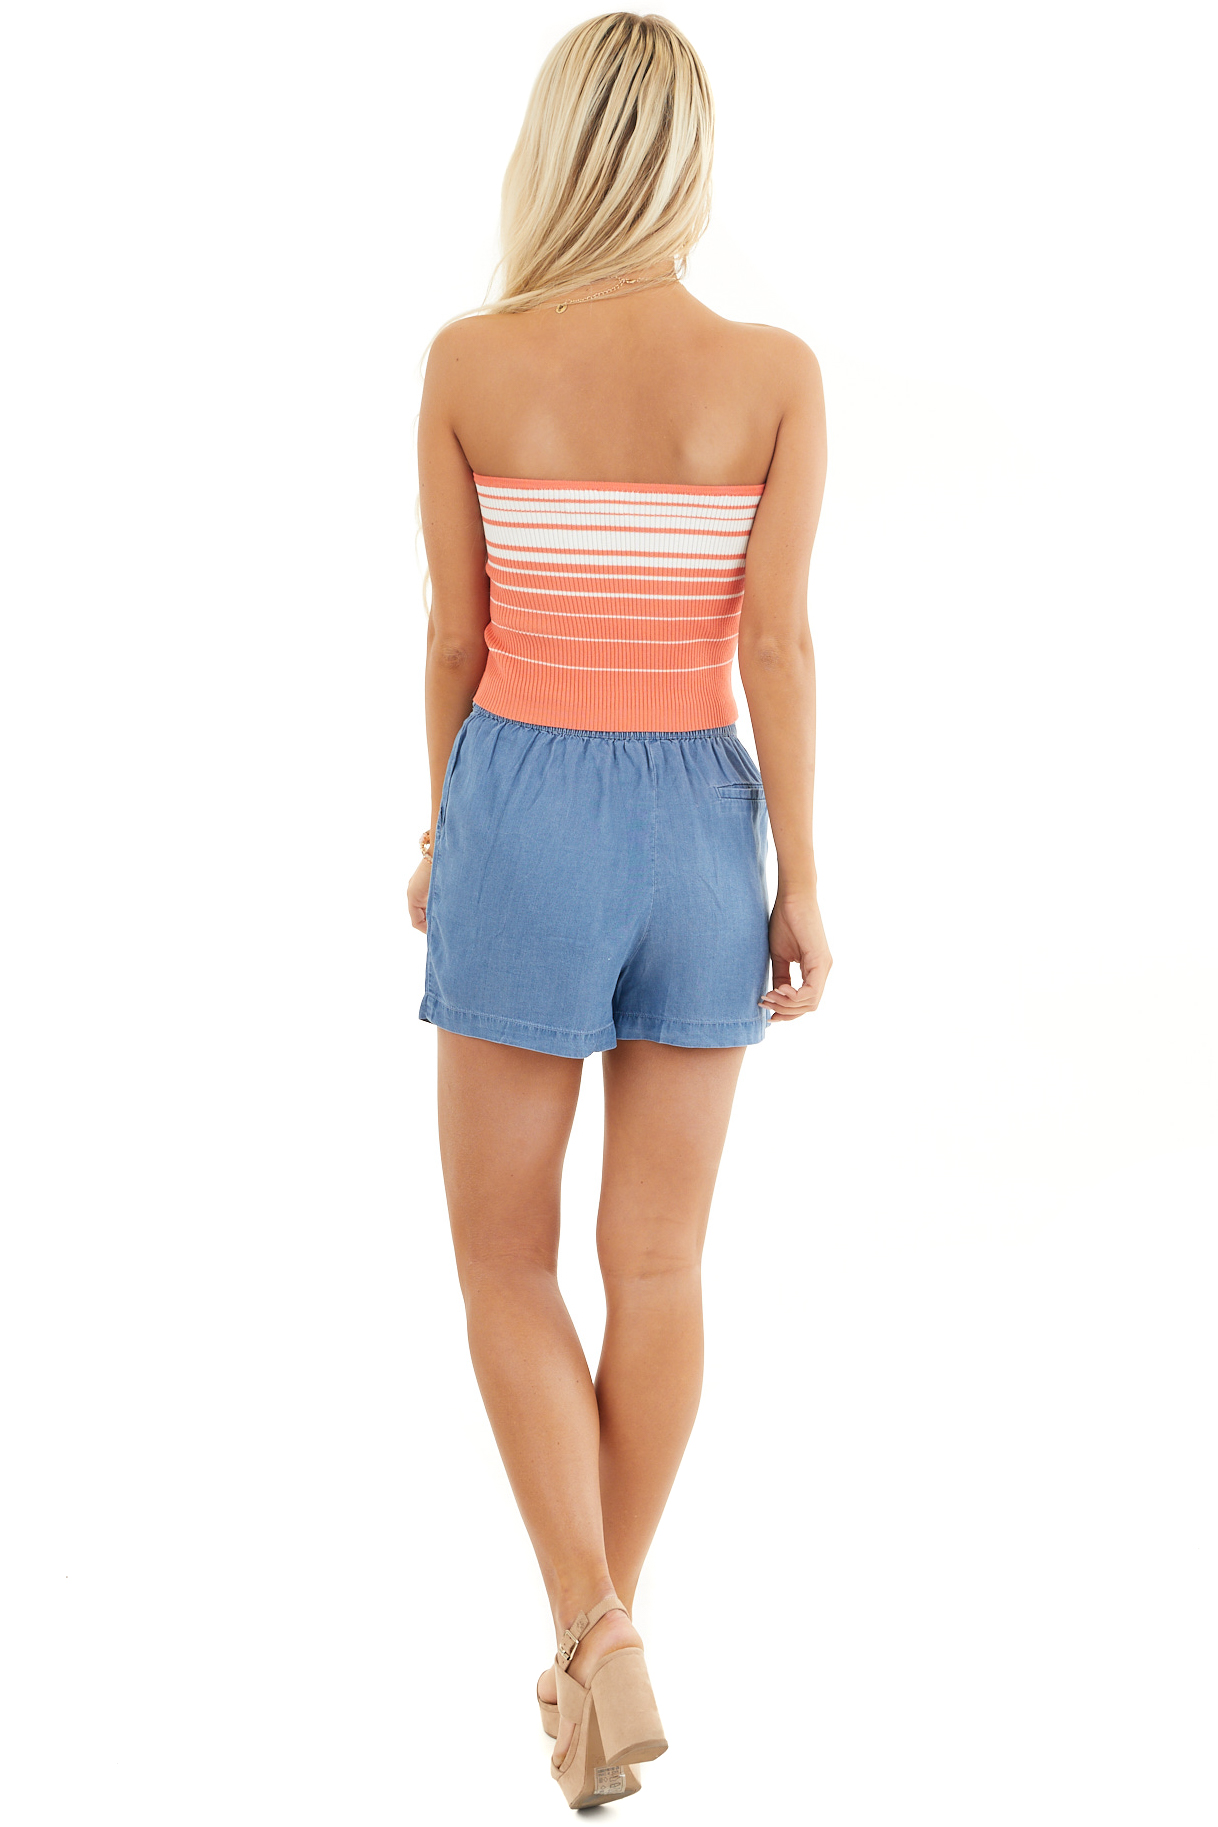 Coral and Coconut White Striped Ribbed Knit Tube Top back full body